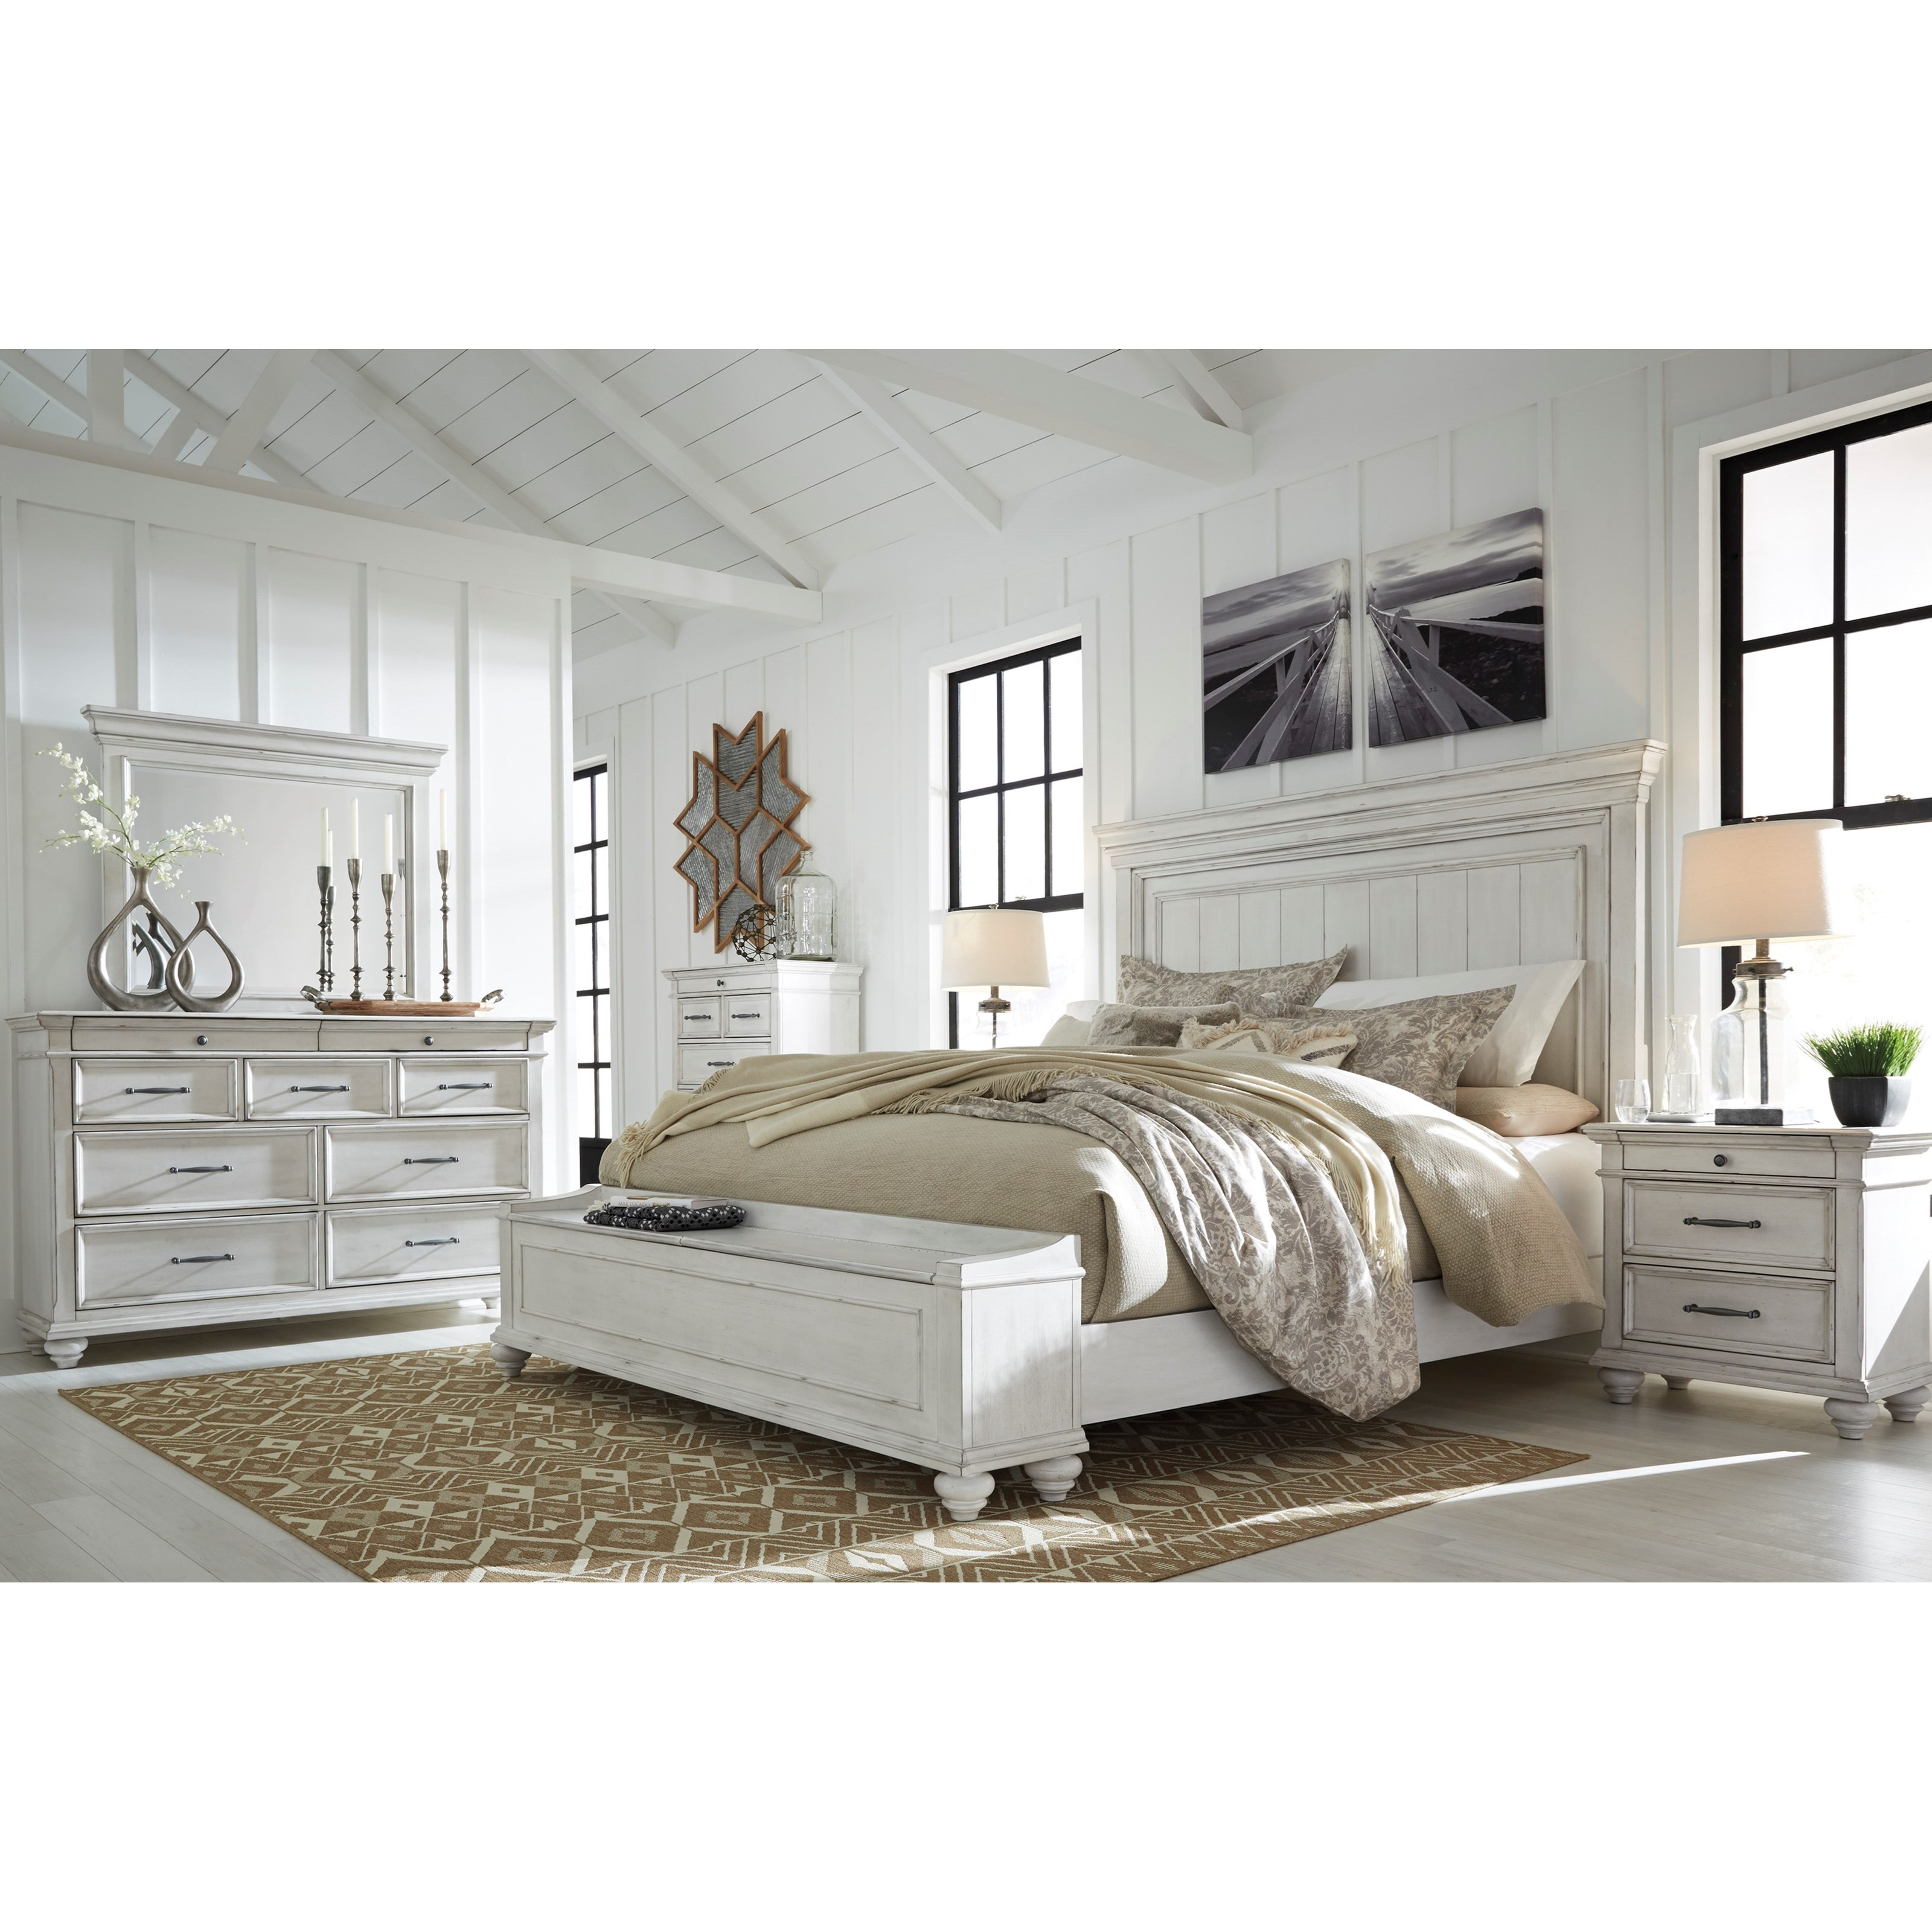 Kanwyn King Bedroom Group by Benchcraft at Houston's Yuma Furniture